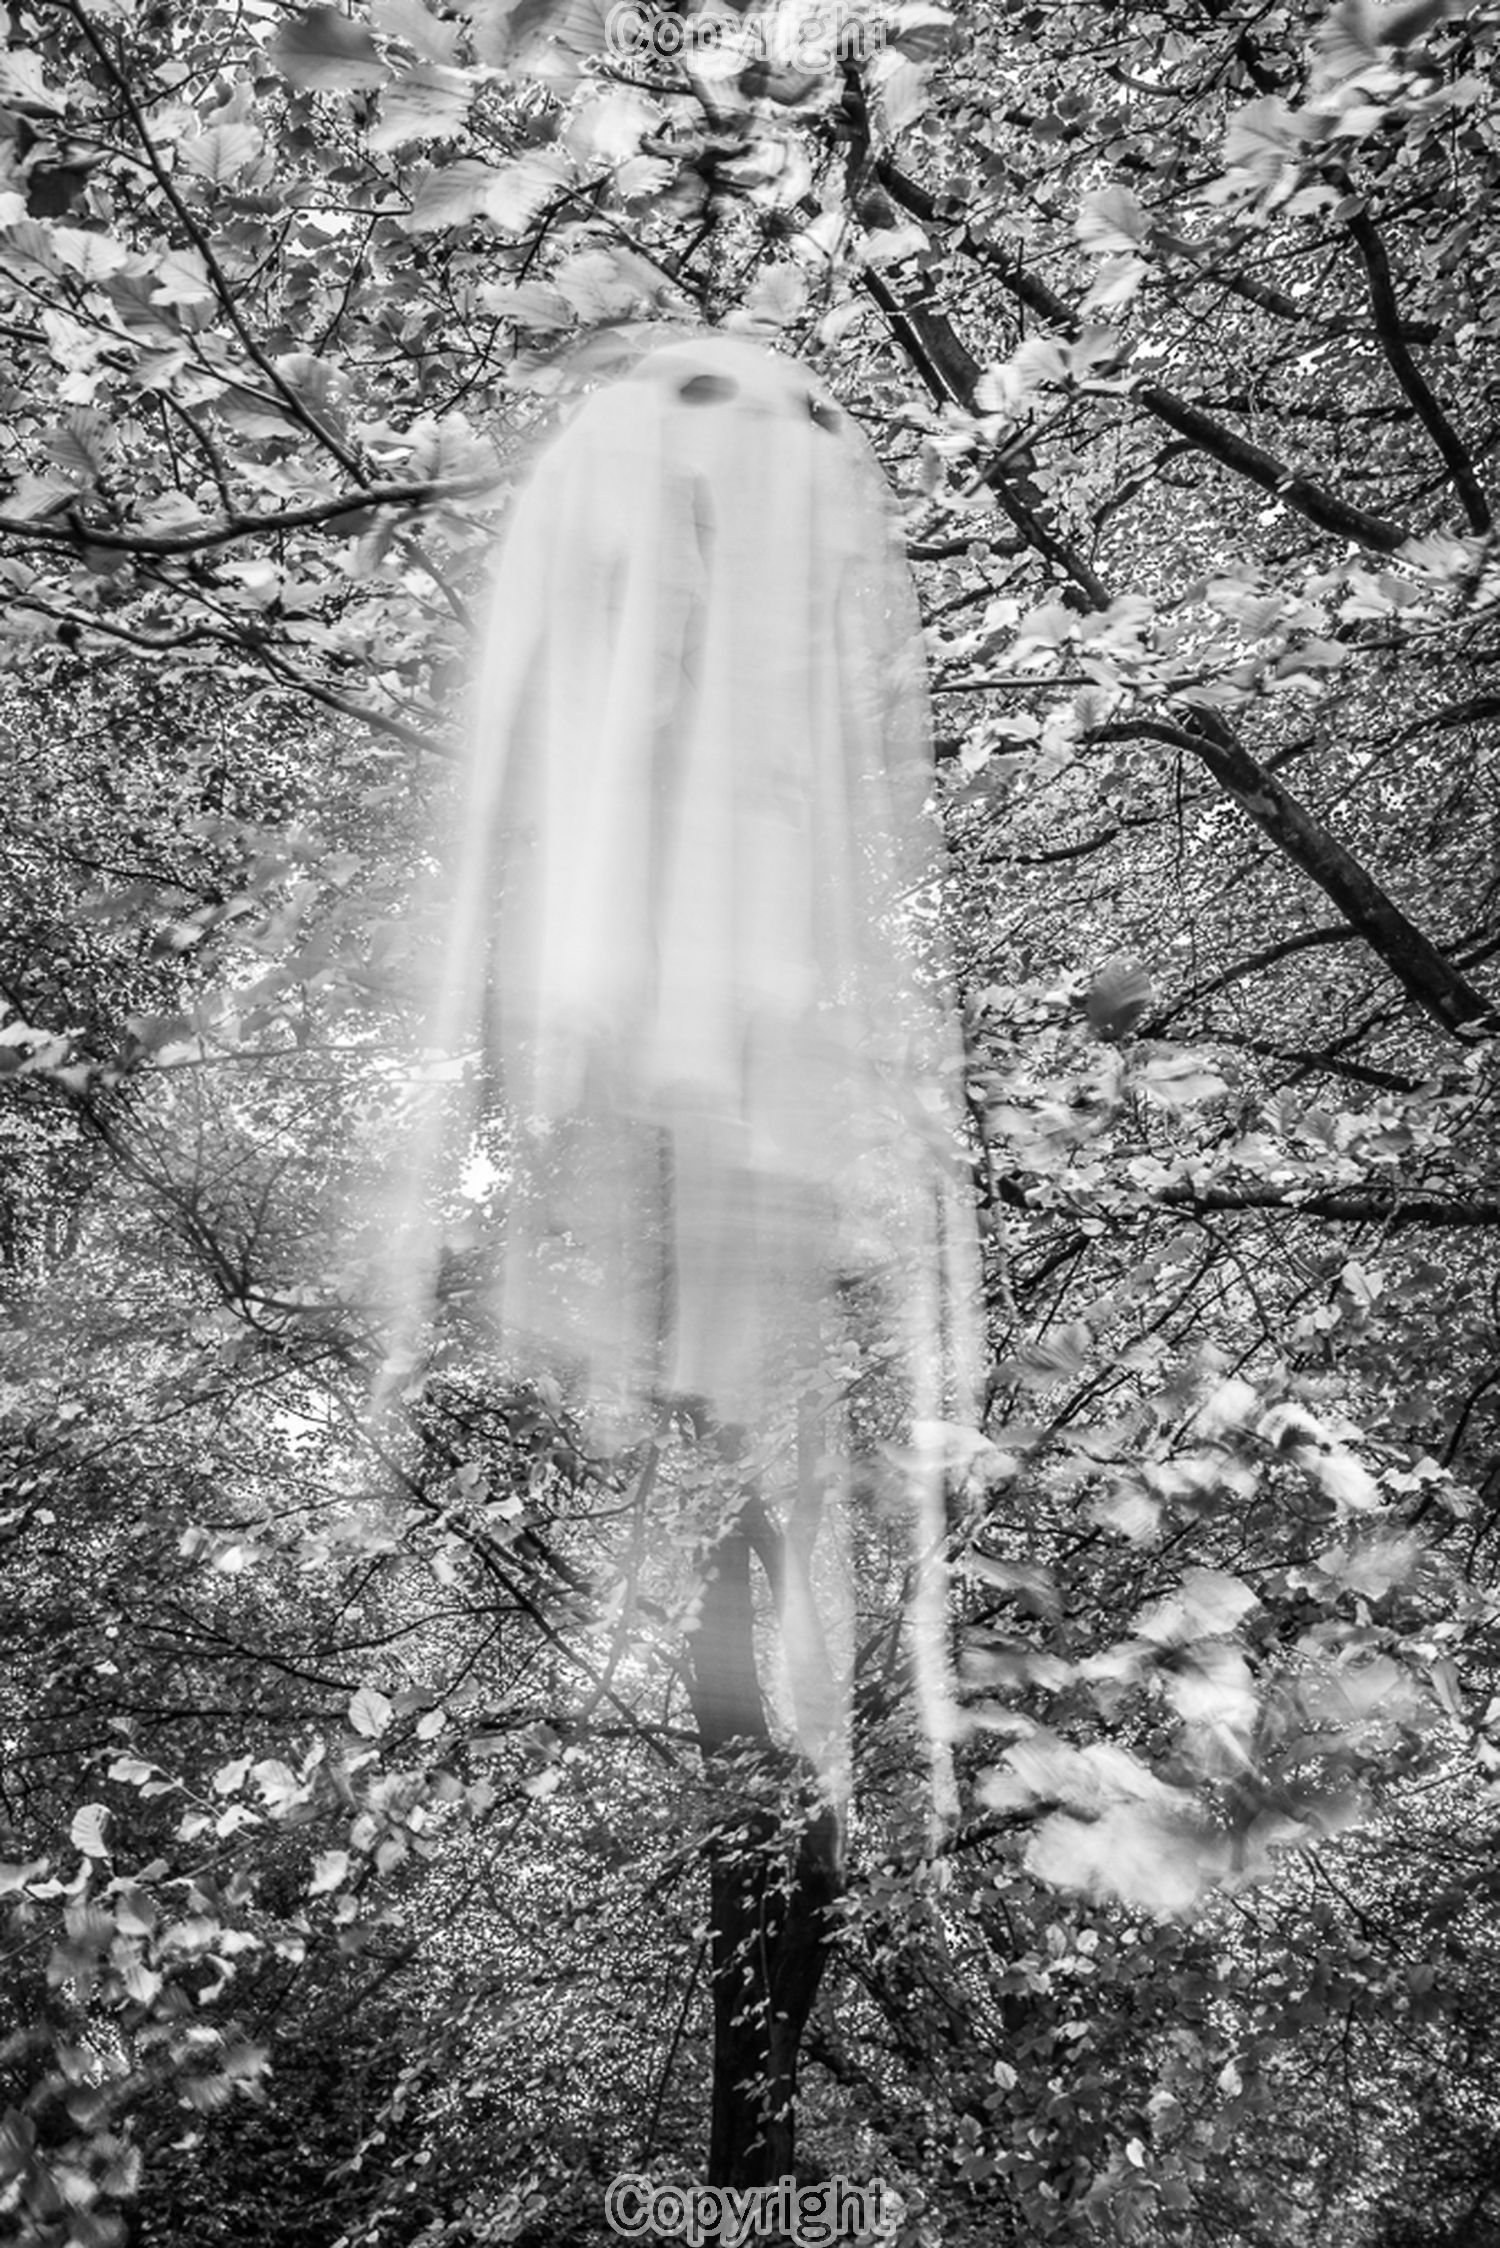 Ghostly happenings in the woods... Is it safe out there? Taken on a Nikon D800 24mm f/20 0.6s ISO 100